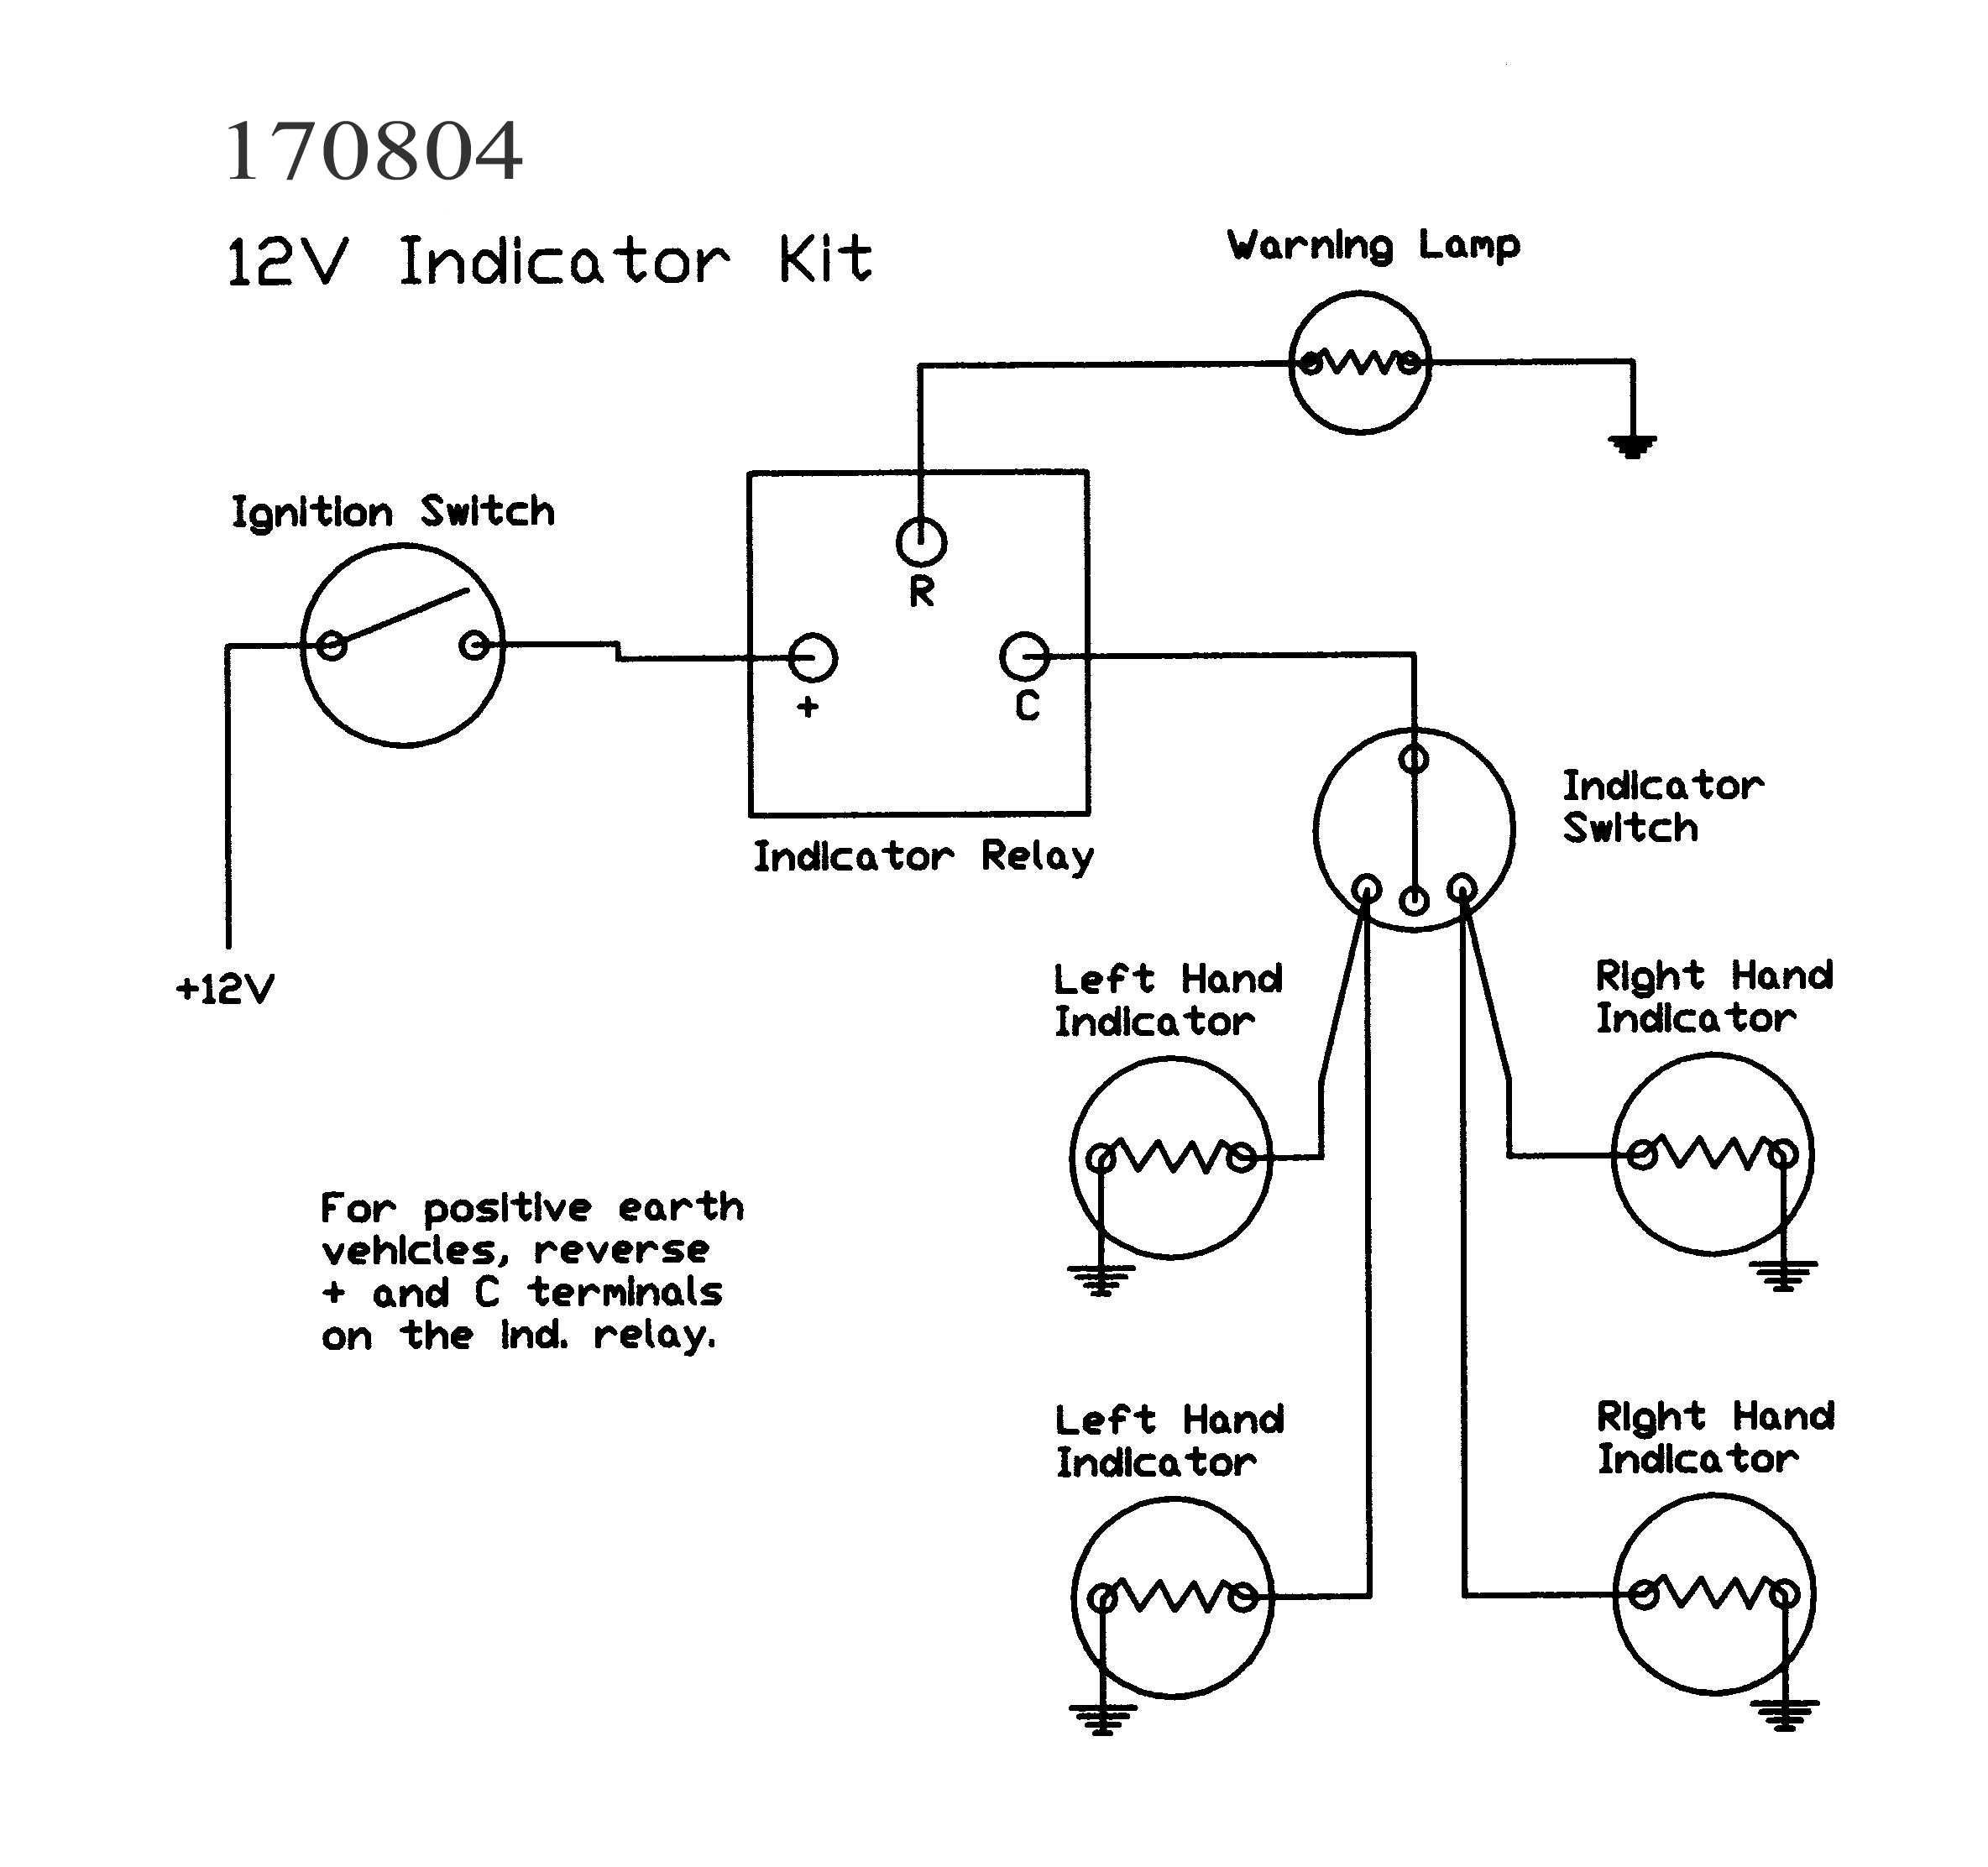 Wiring Diagram For 12v Indicators : Indicator kits without lamps